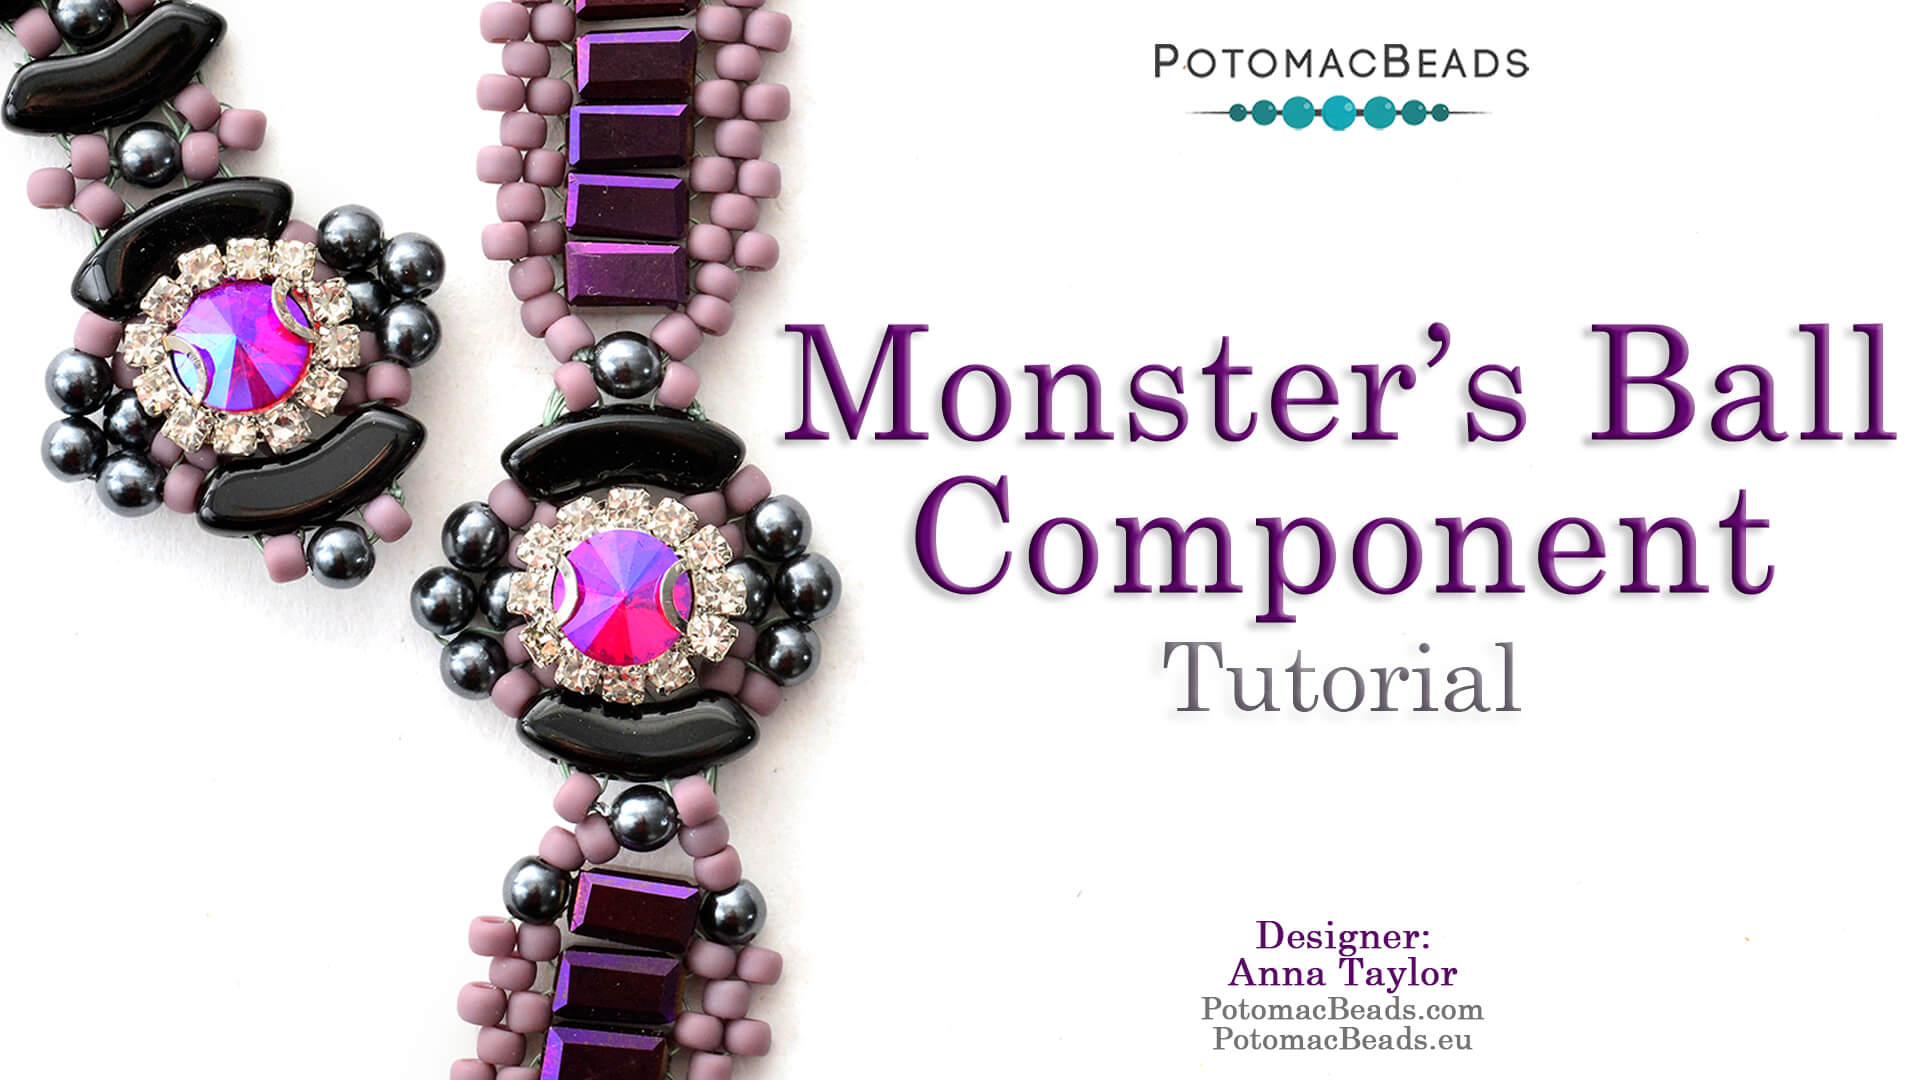 How to Bead / Free Video Tutorials / Beadweaving & Component Projects / Monster's Ball Component